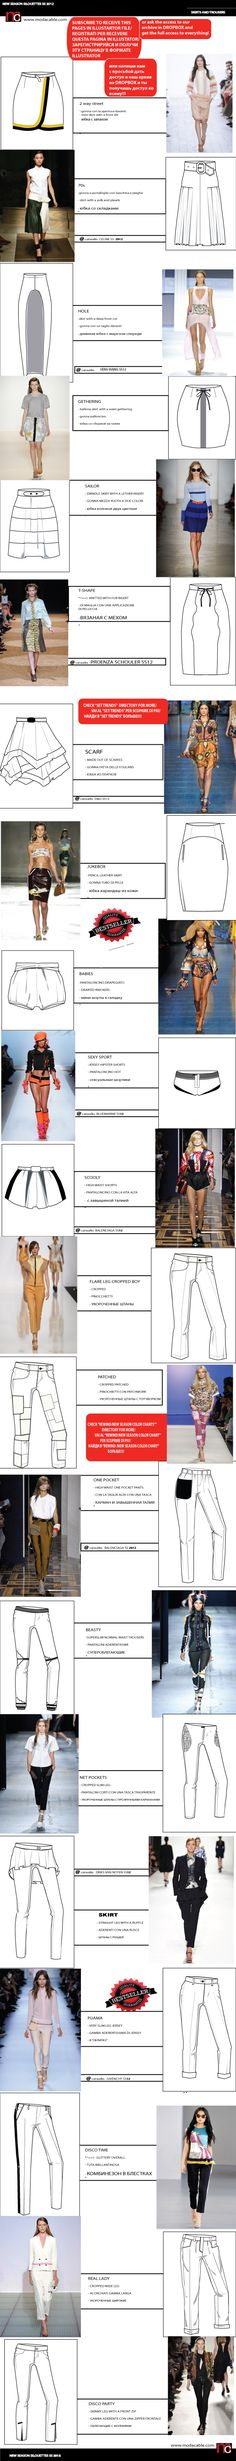 Flats drawn of runway looks from ModaCable.com